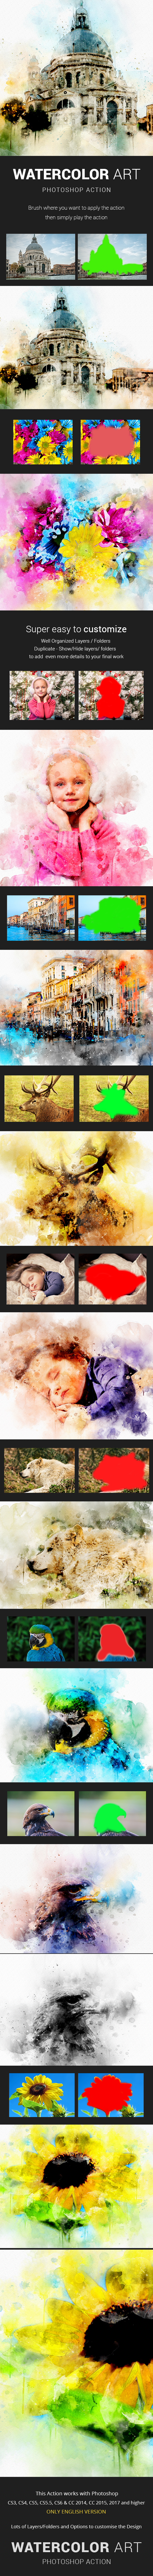 Watercolor Art Photoshop Action - Photo Effects Actions